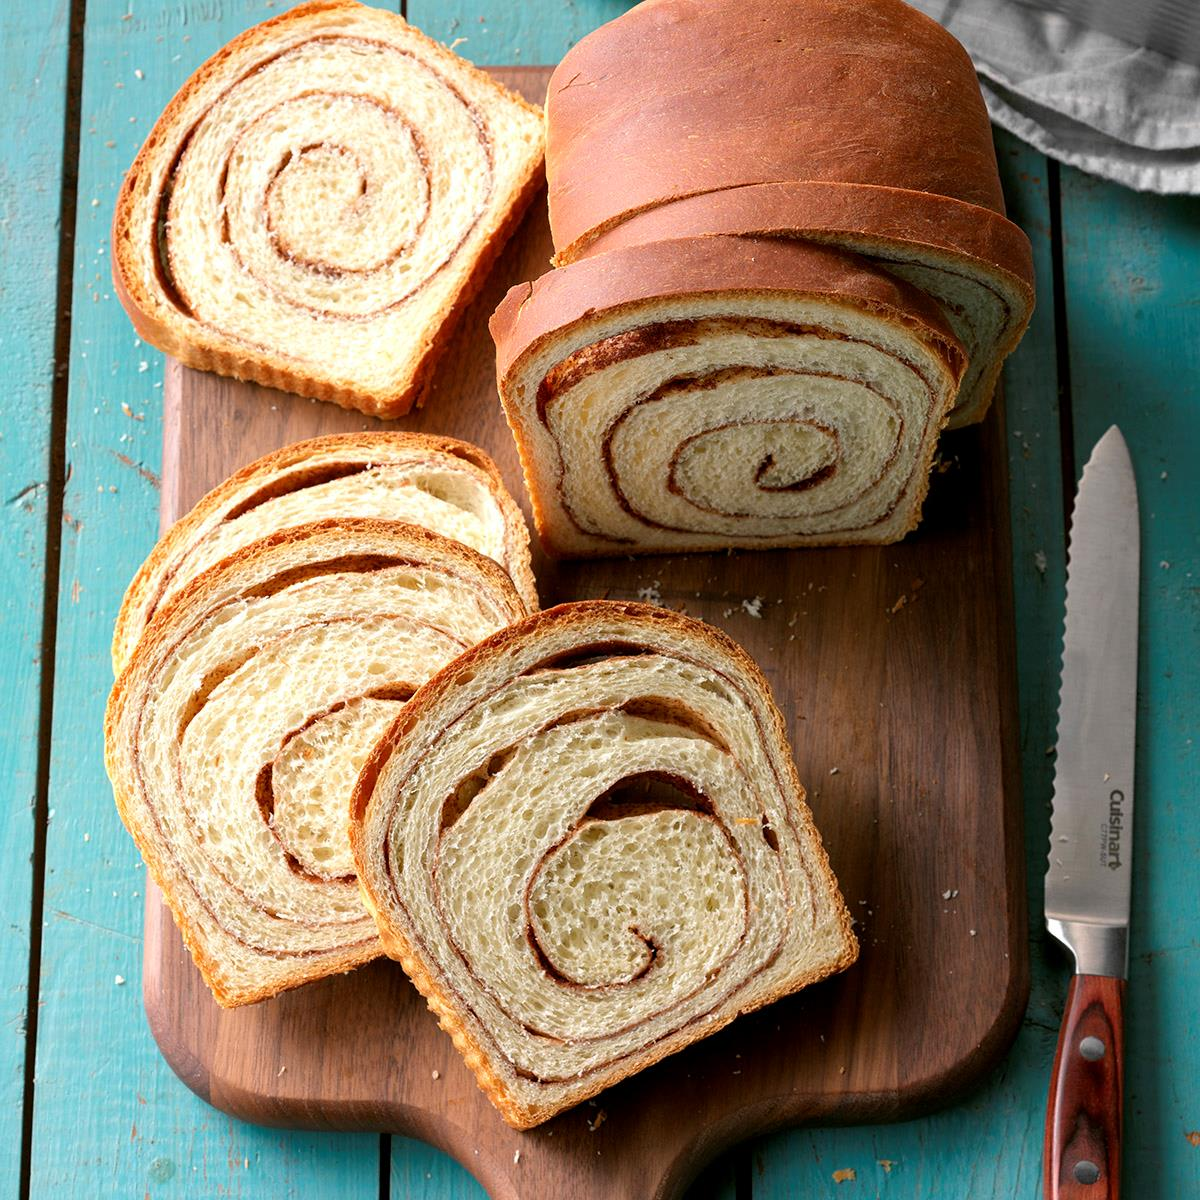 Cinnamon Swirl Bread Recipe How To Make It Taste Of Home